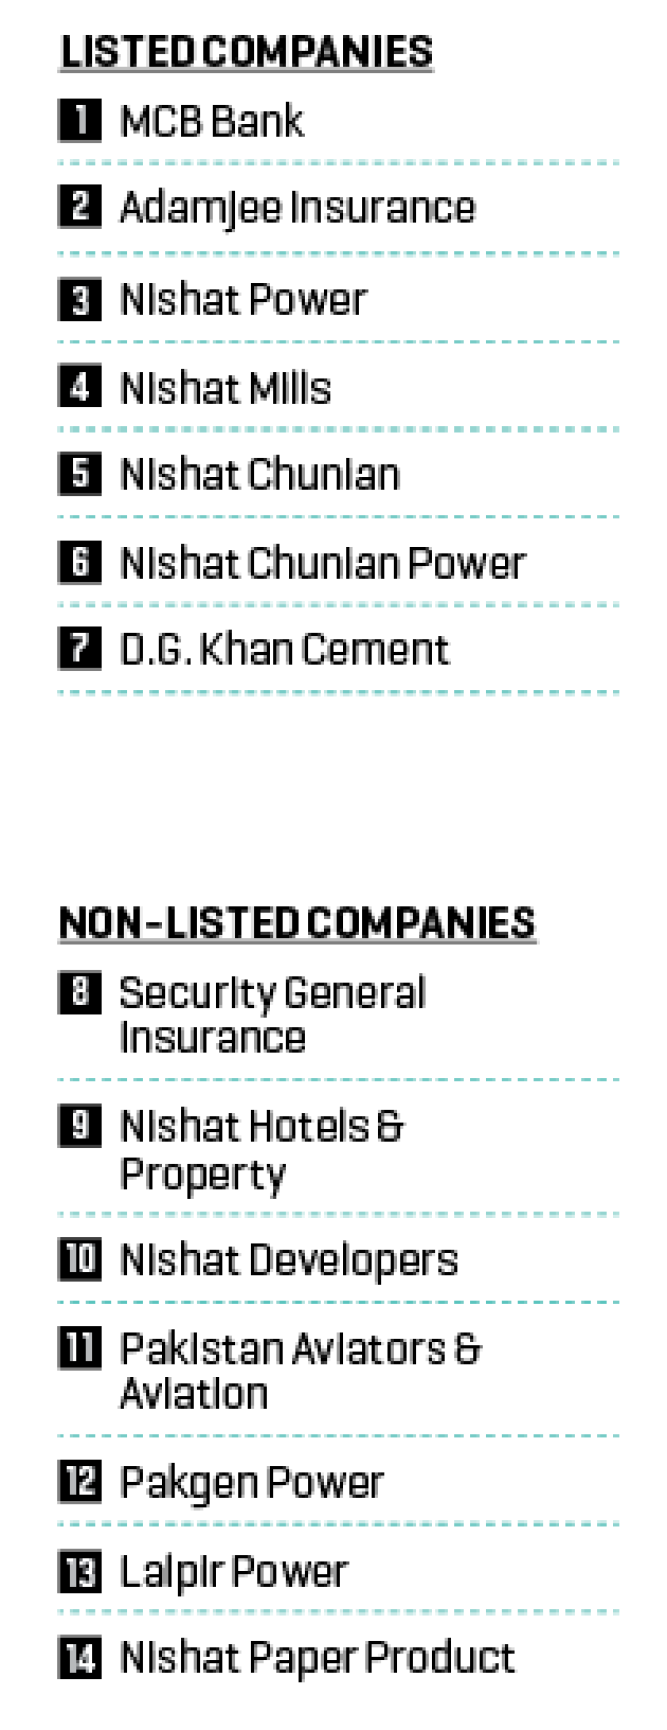 The man behind Pakistan's biggest conglomerate